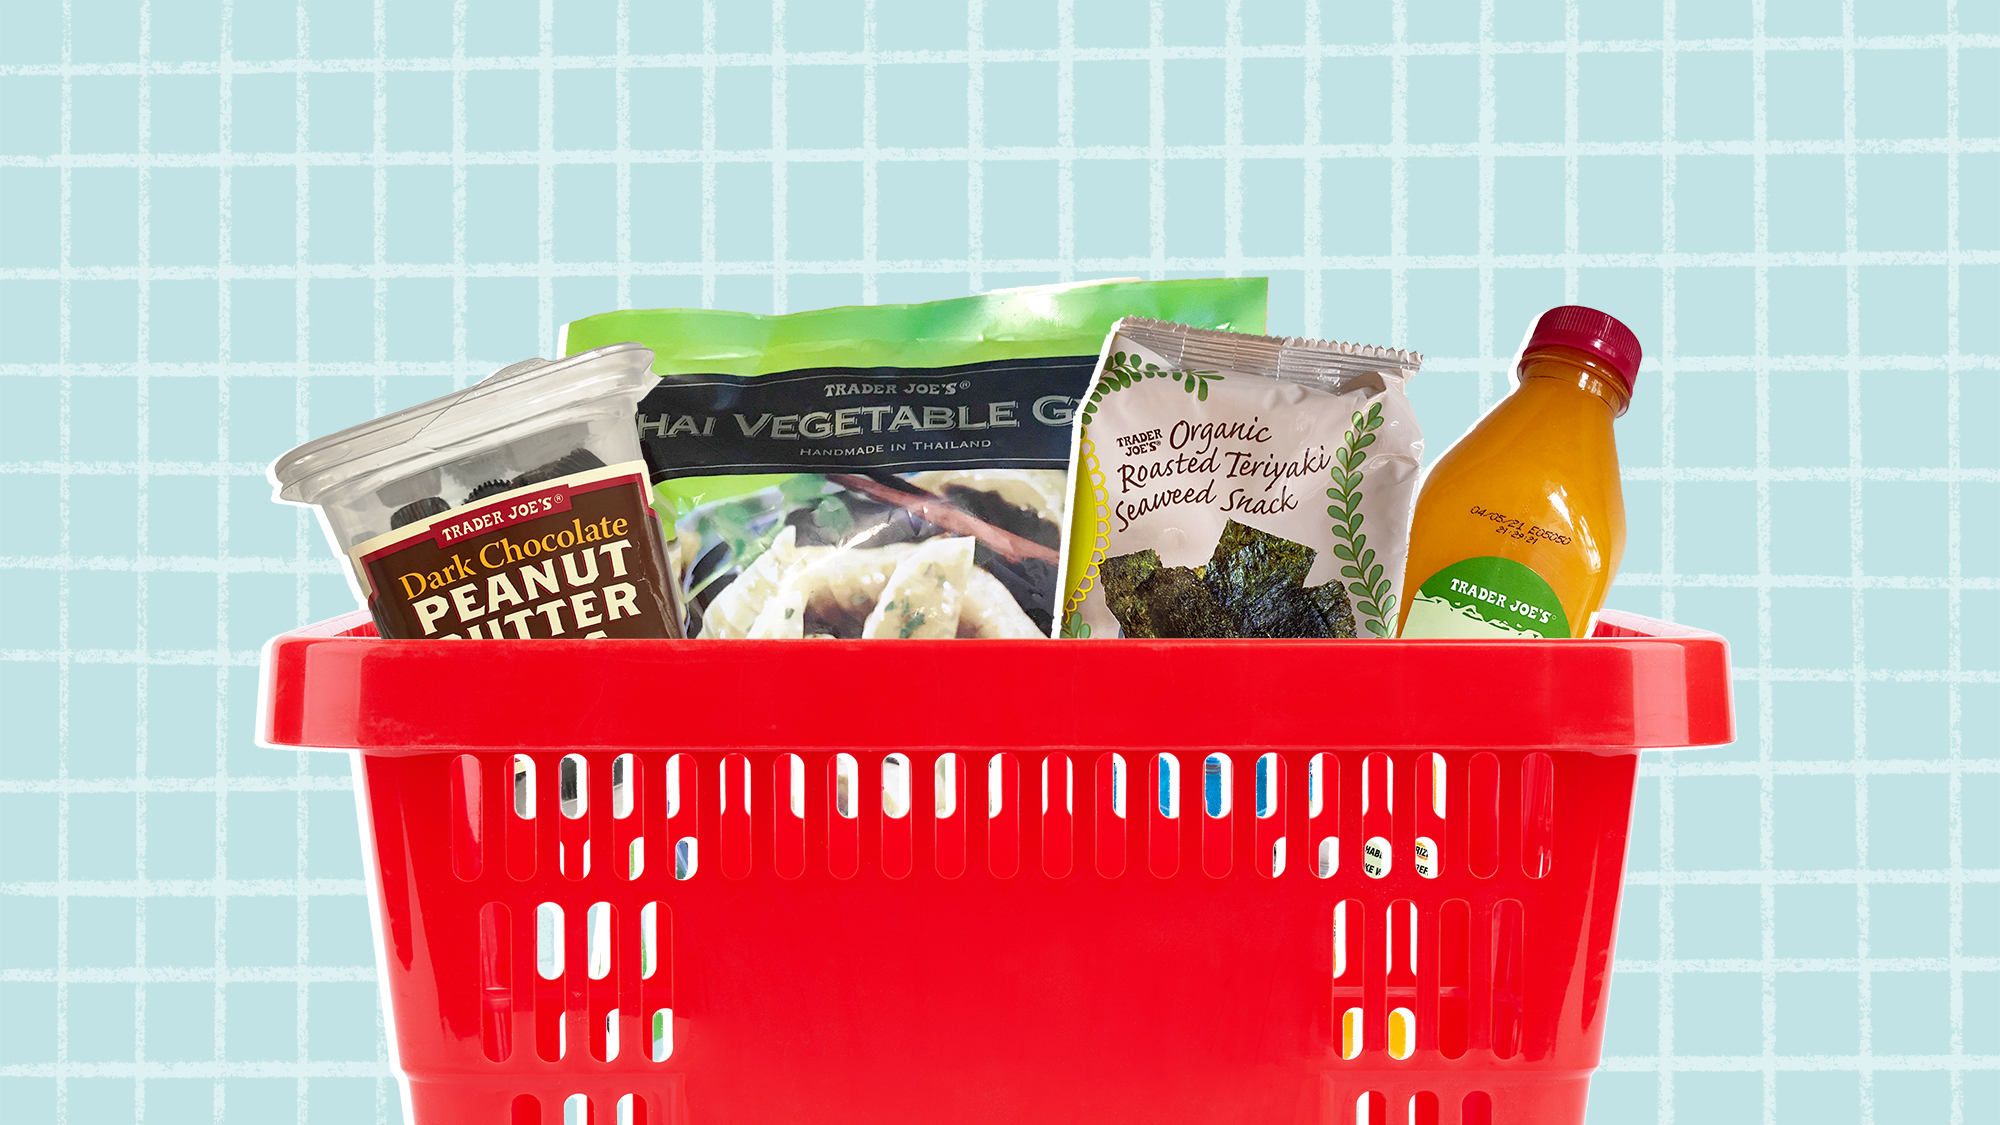 Selection of Trader Joe's products in a shopping basket